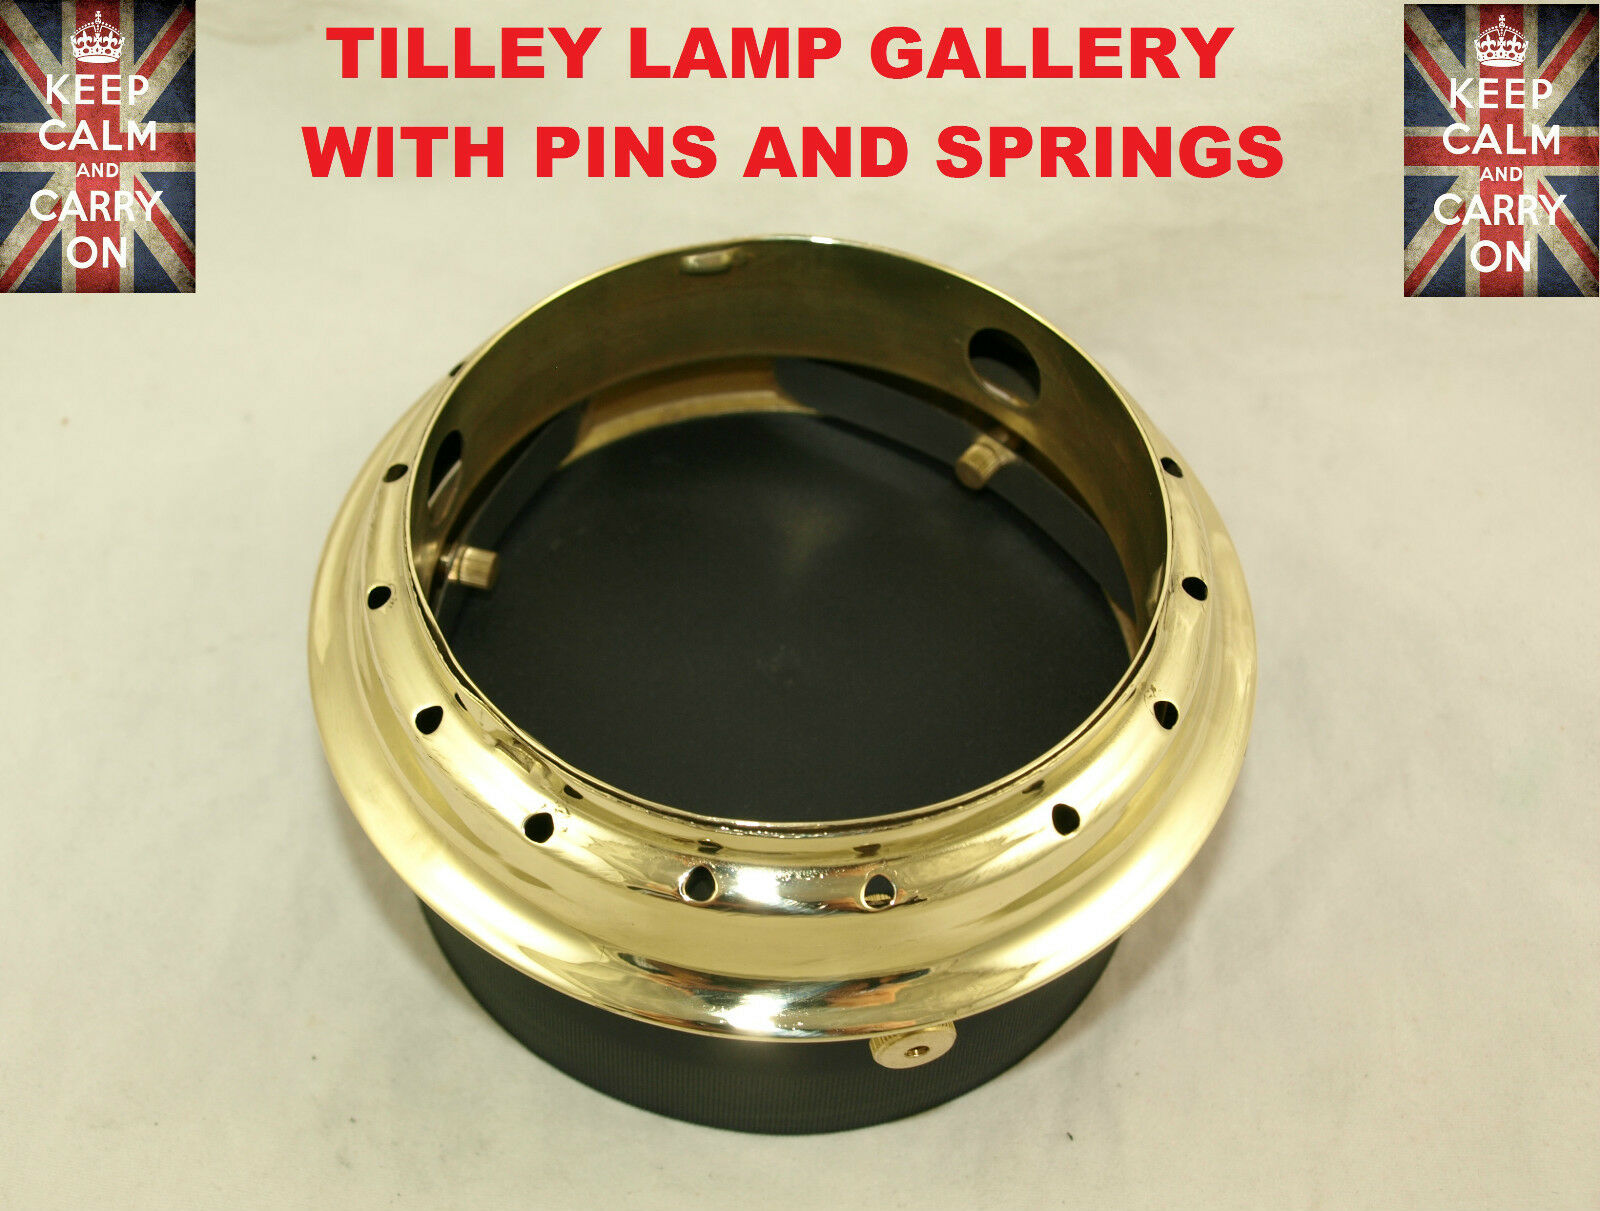 TILLEY LAMP GALLERY AND SPRINGS  TABLE LAMP SERVICE  KIT PARTS SPRINGS HOOD  promotional items